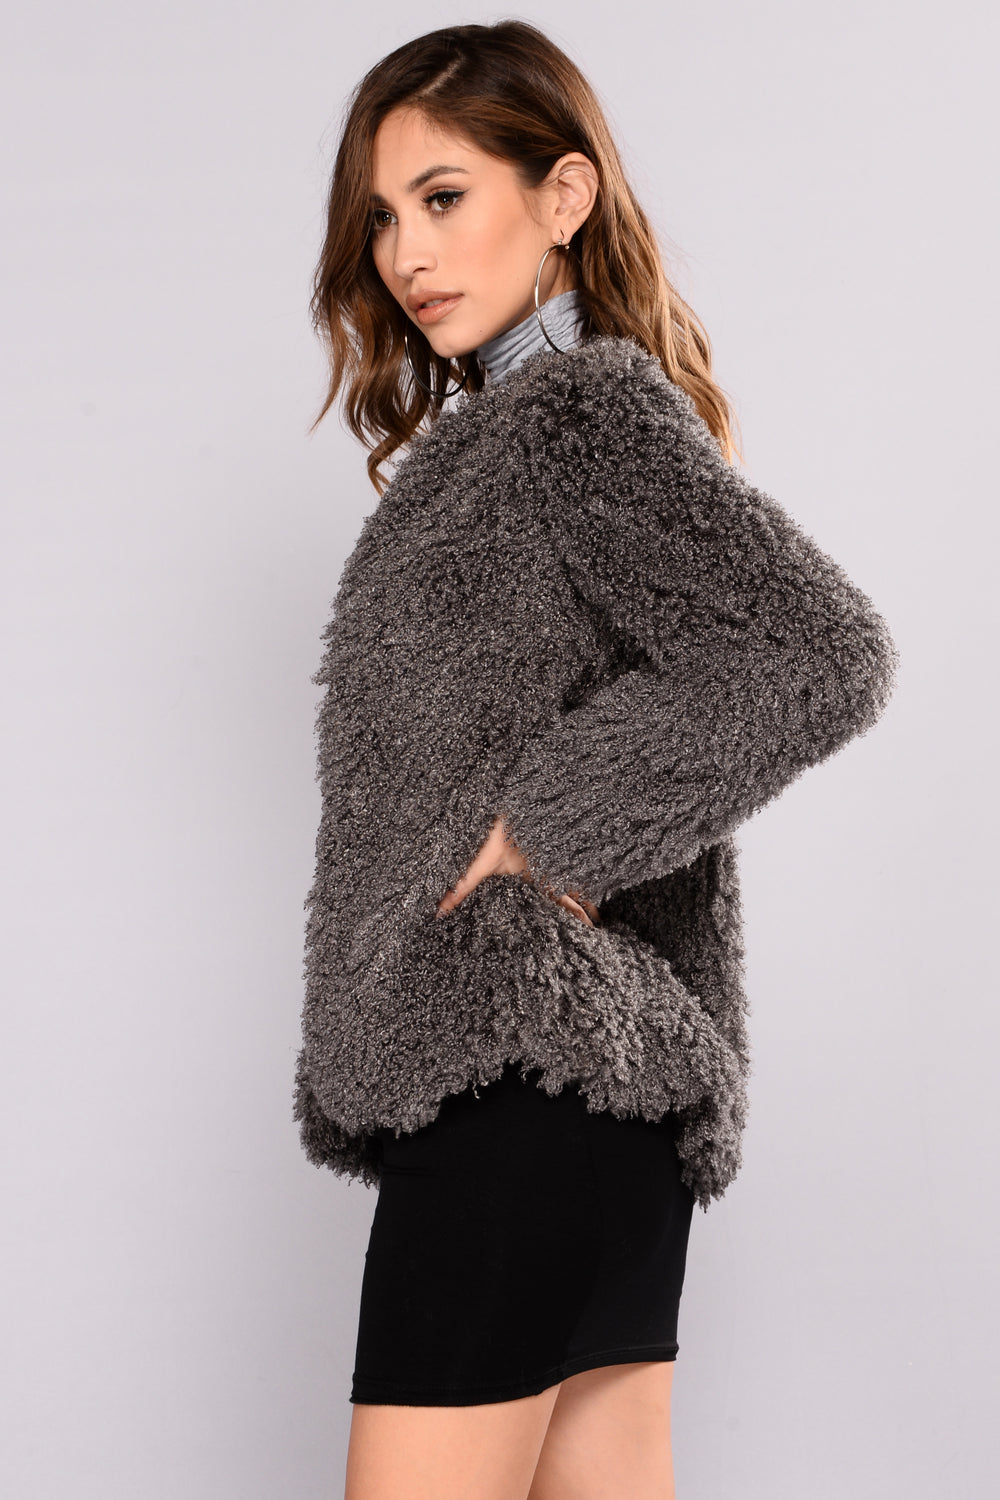 Cozy Lover Fuzzy Jacket - Grey